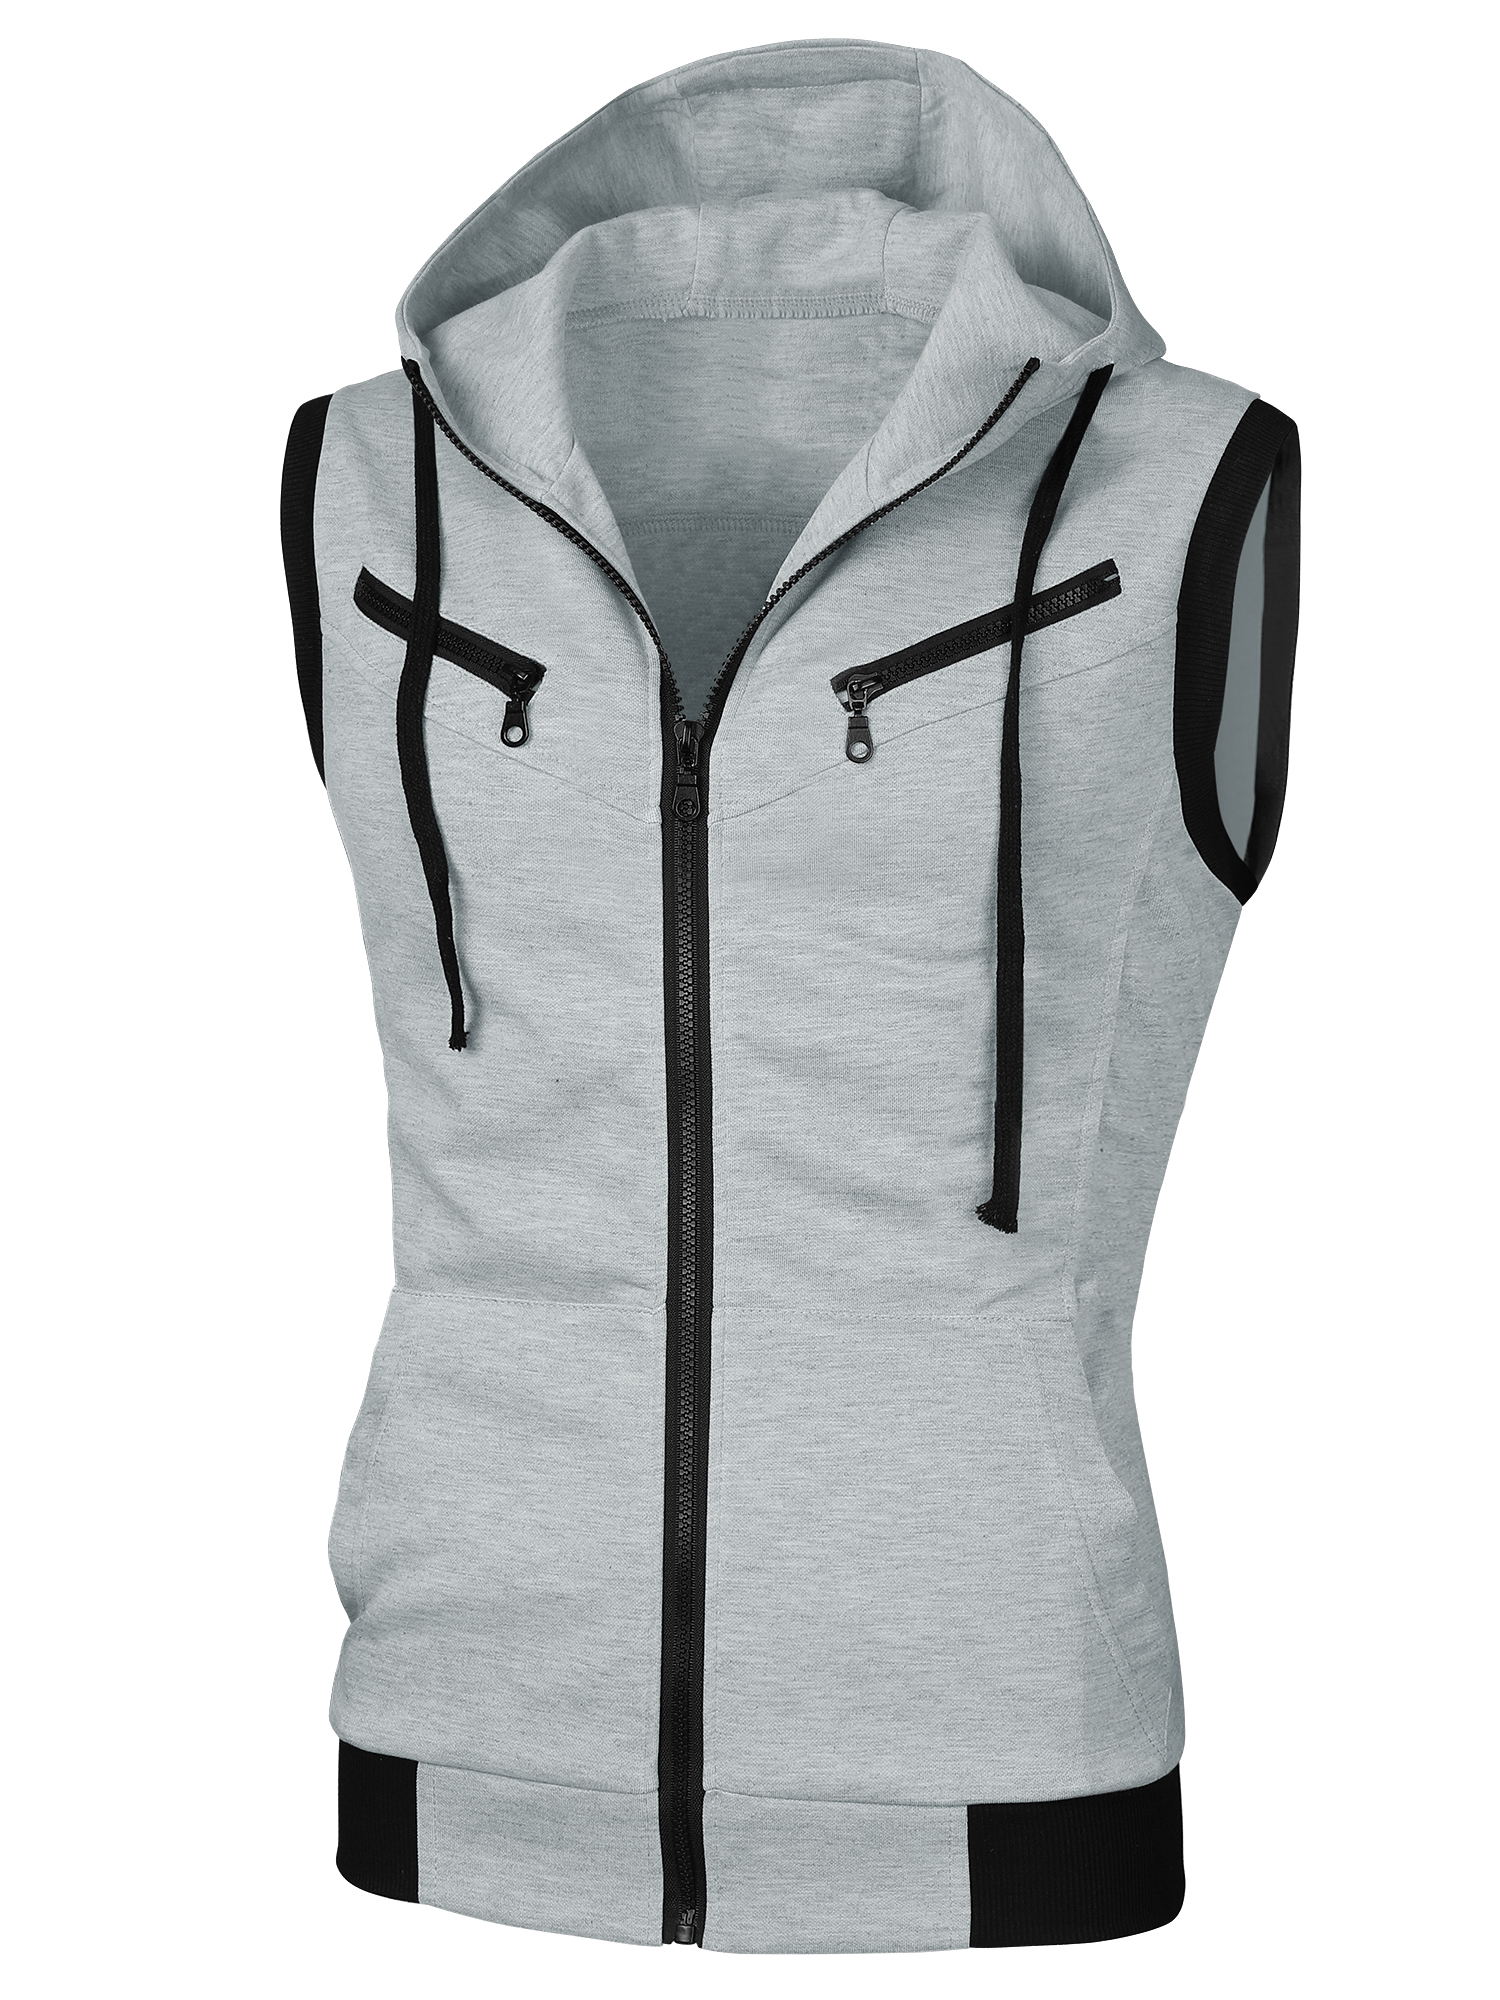 Men Ribbing Hem Kangaroo Pockets Fashion Hoodie Vest Heather Gray L